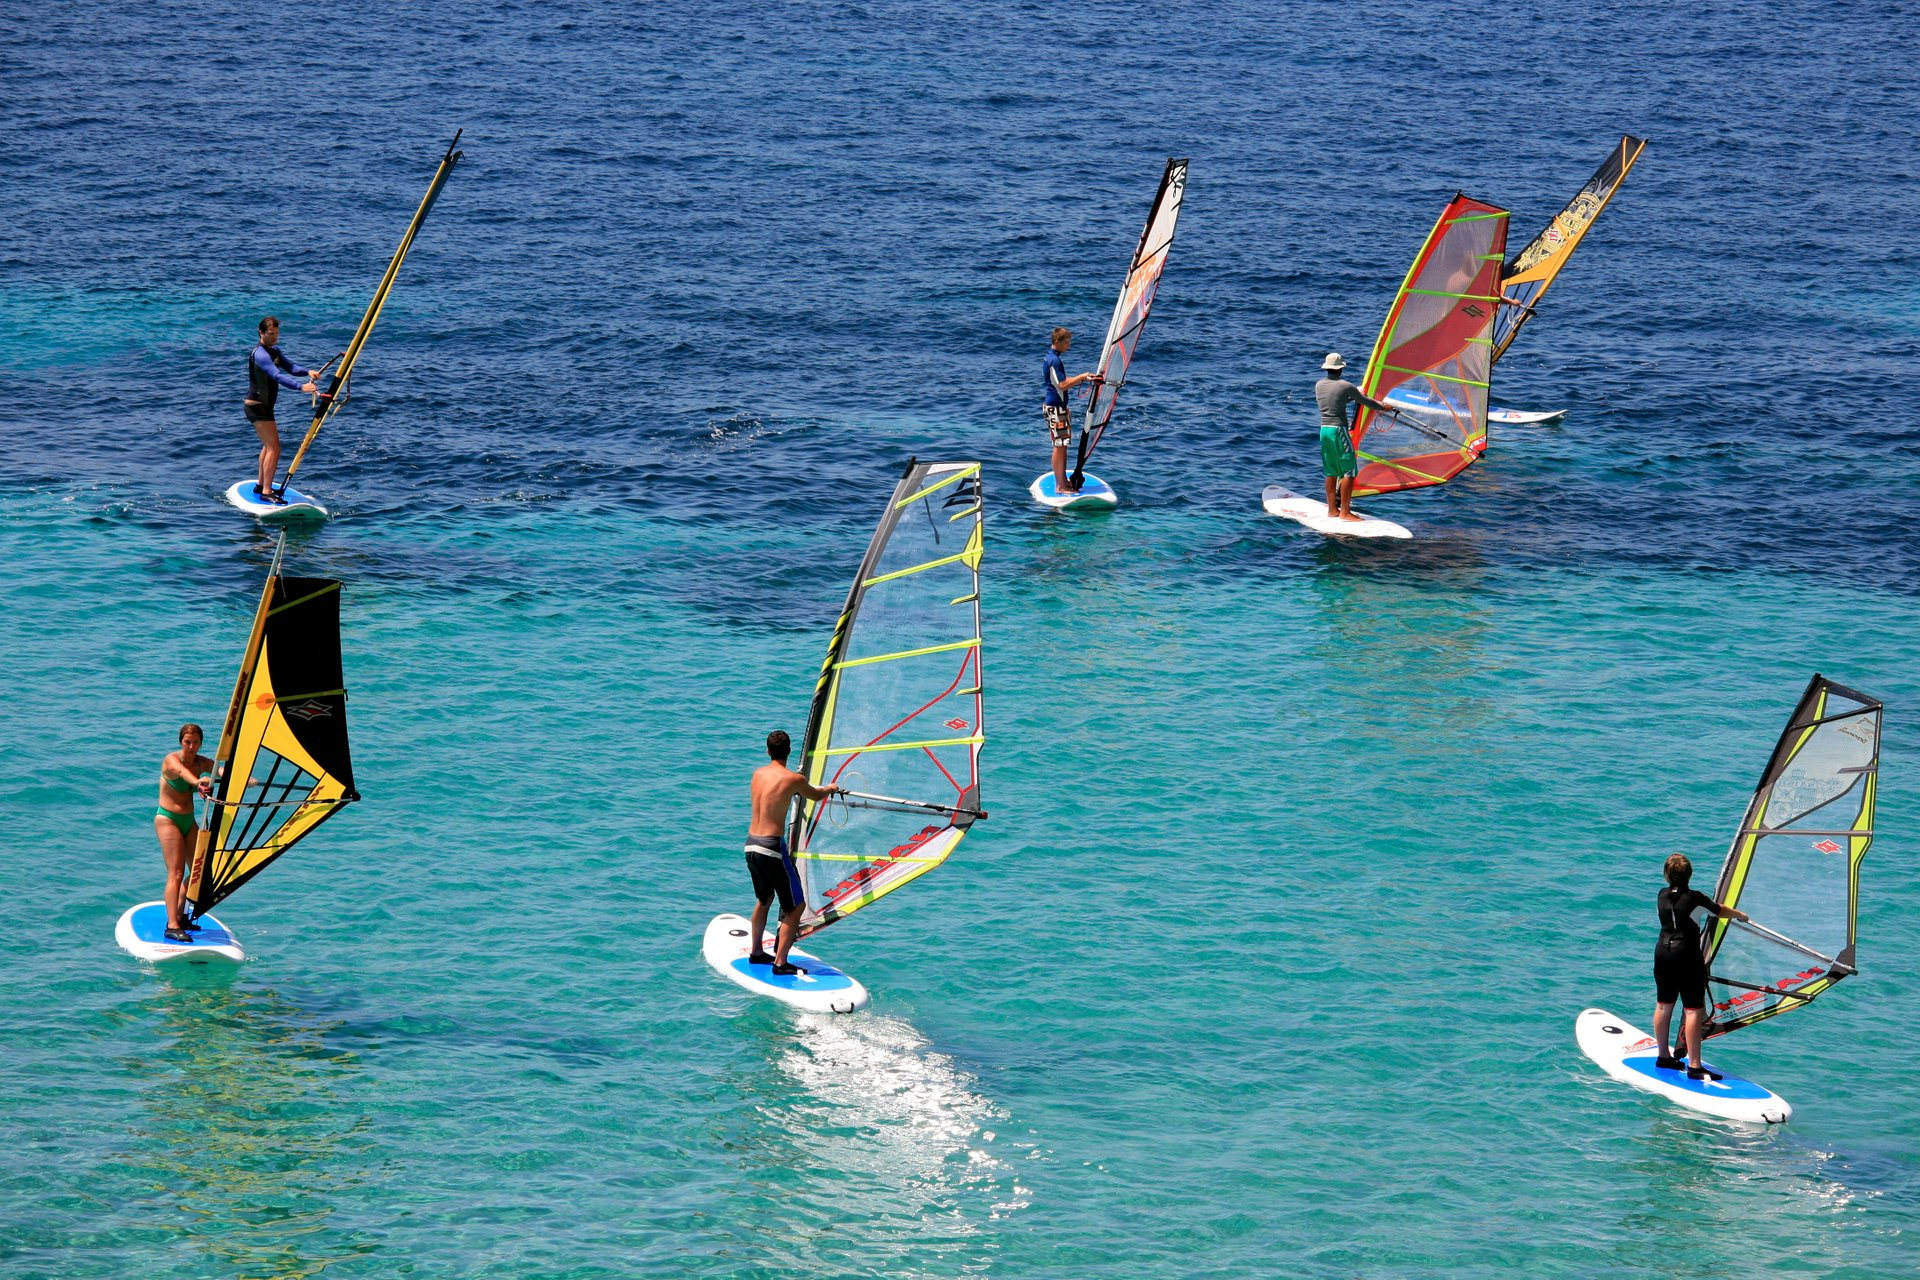 Kitesurfing and Windsurfing in Croatia 2020 - Best Time